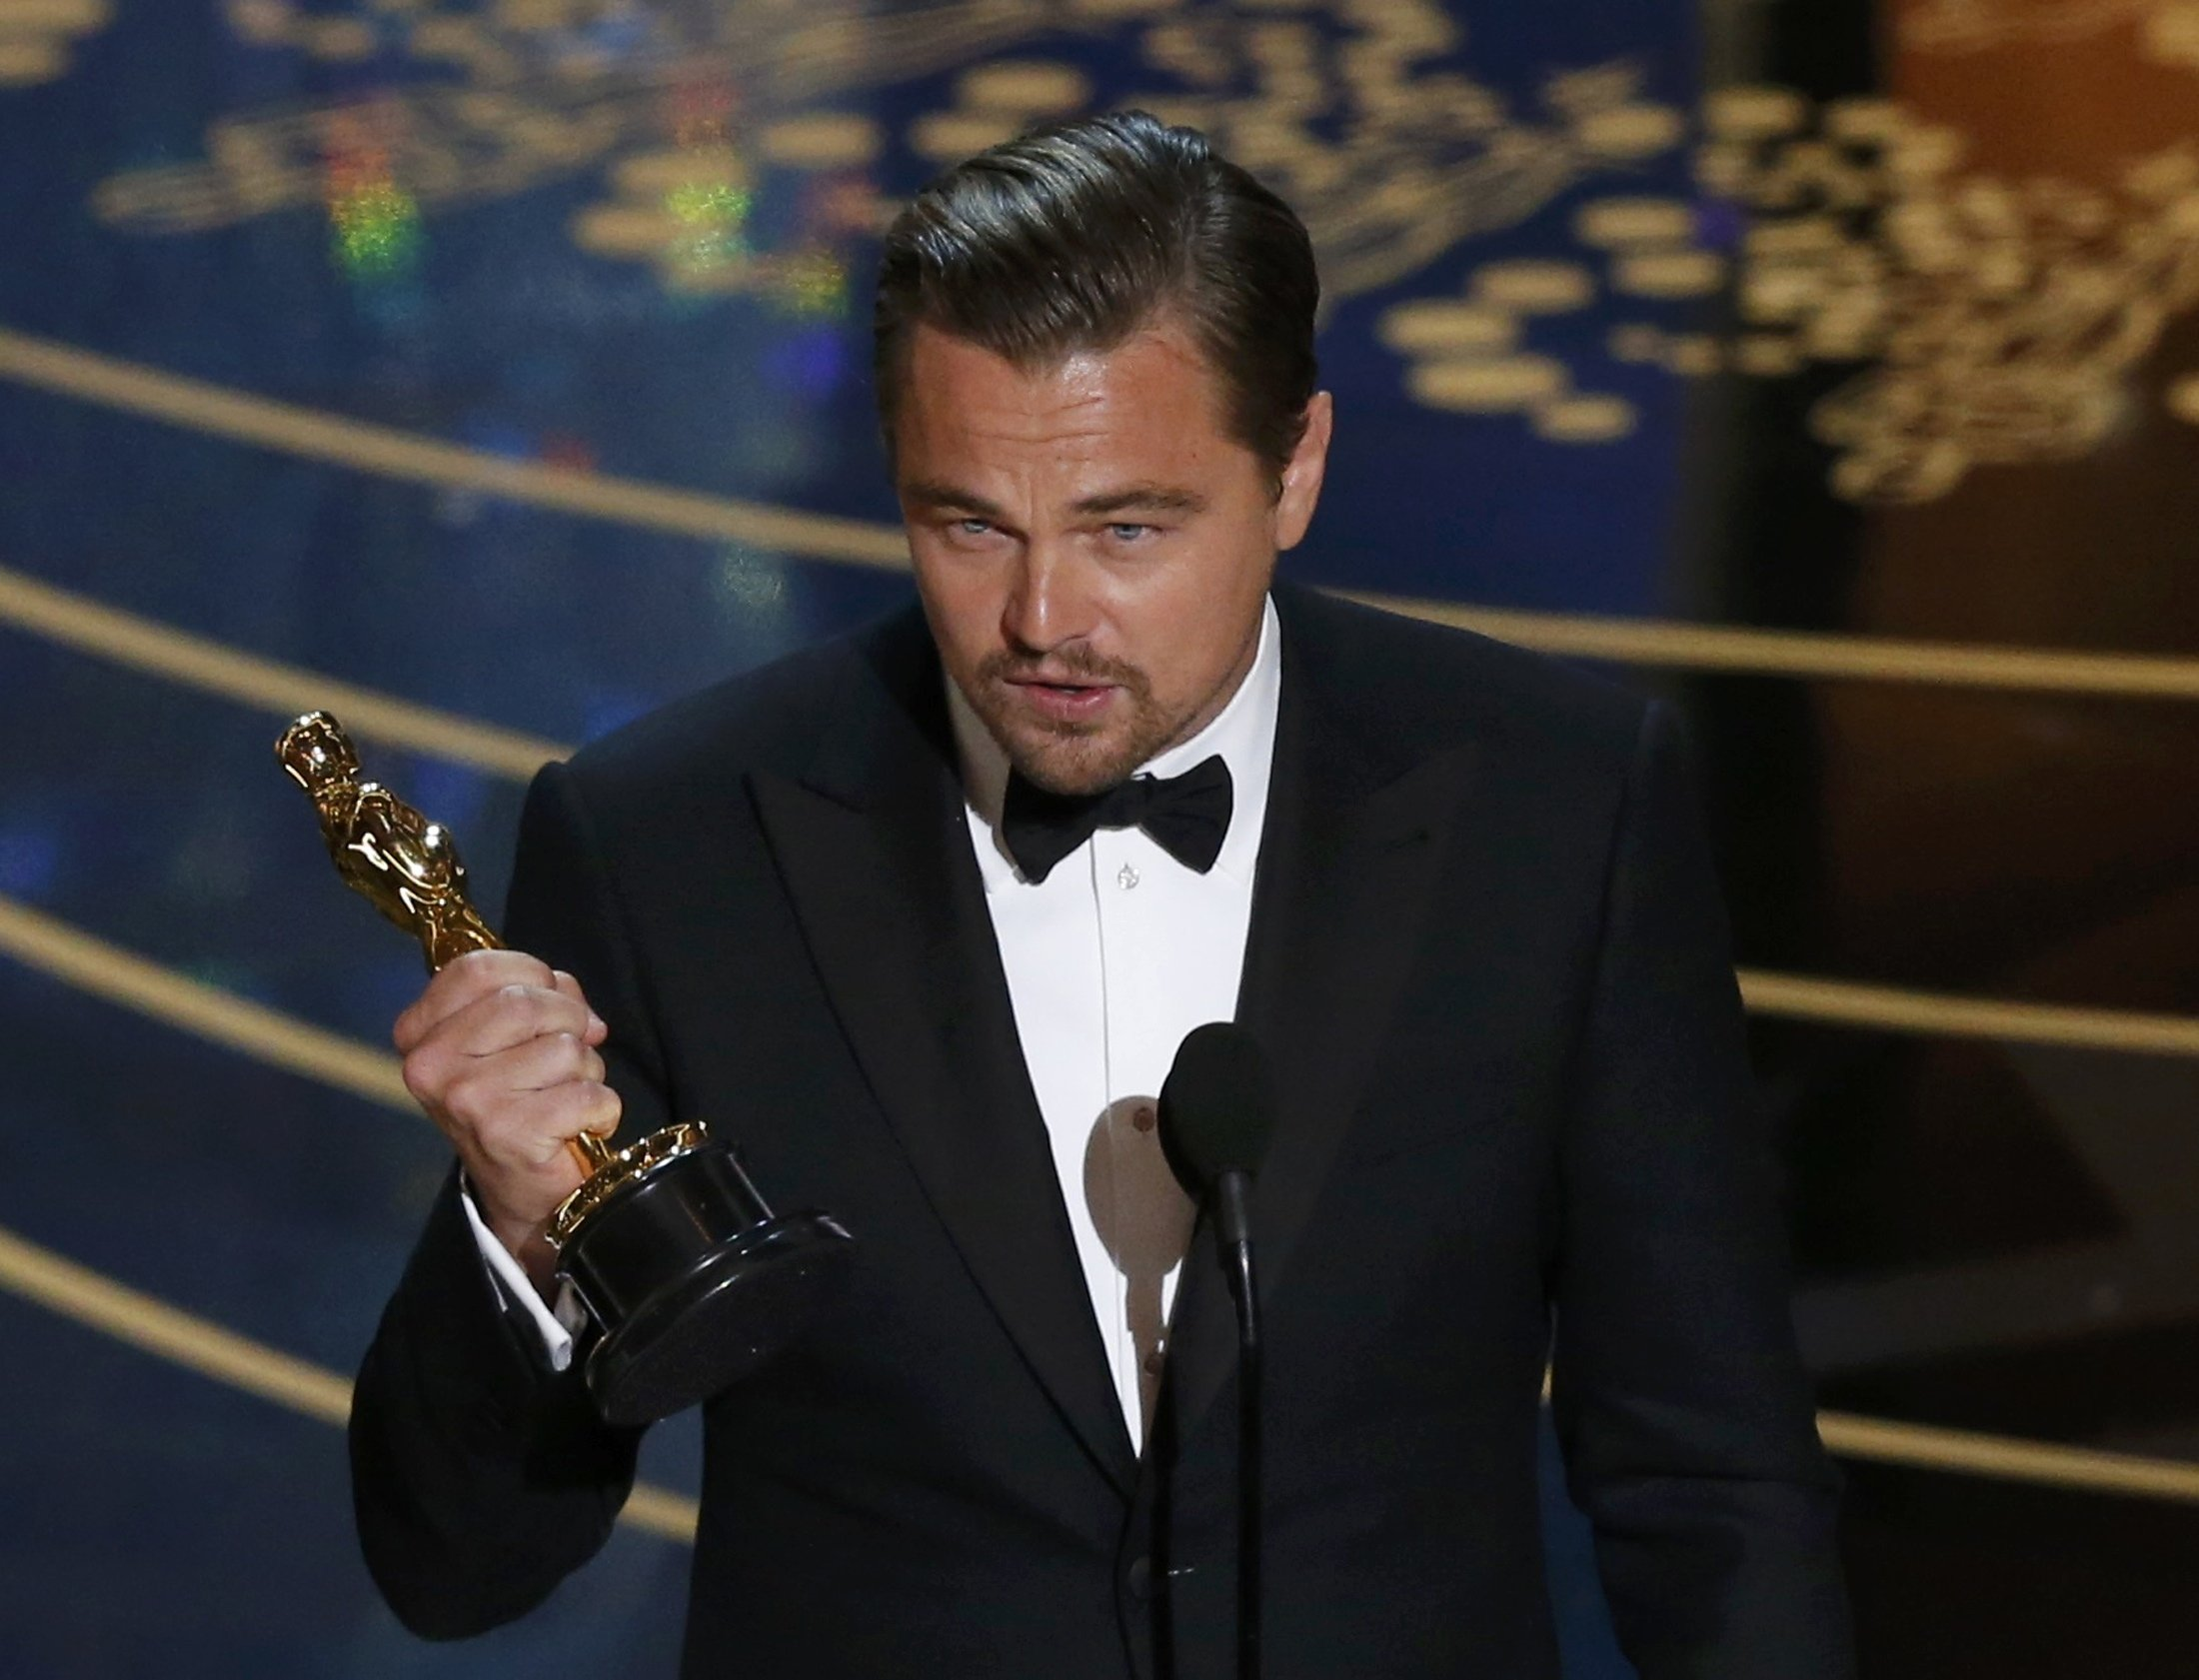 The real reason Leonardo DiCaprio handed over his Oscar